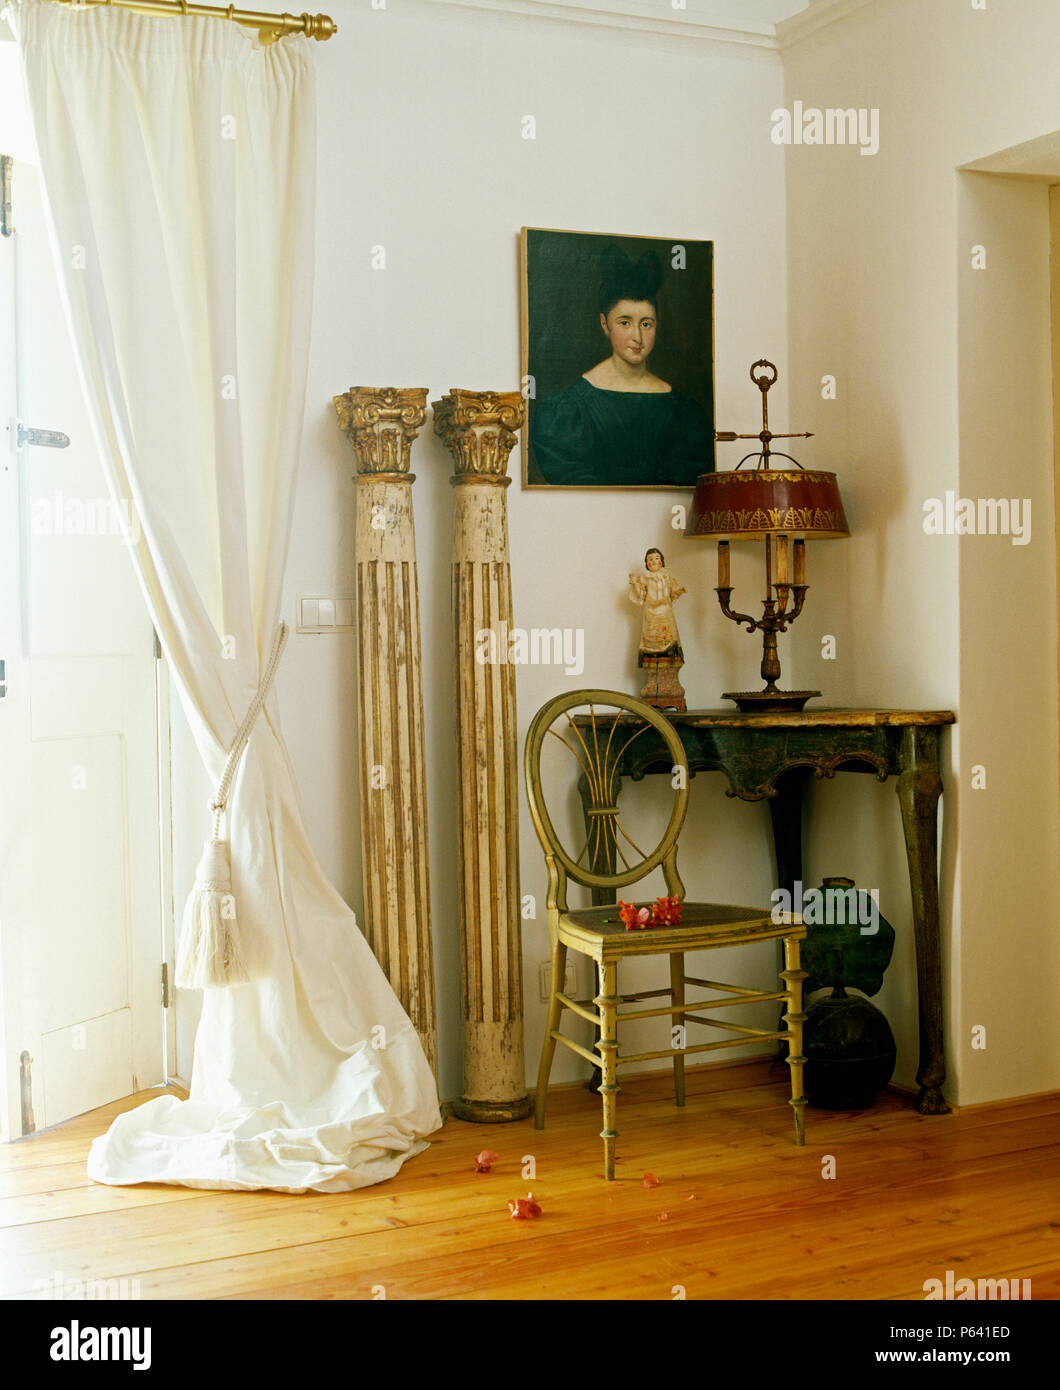 Pair of neo-classical columns beside antique chair and corner table in Portuguese hall with white curtain on French windows - Stock Image